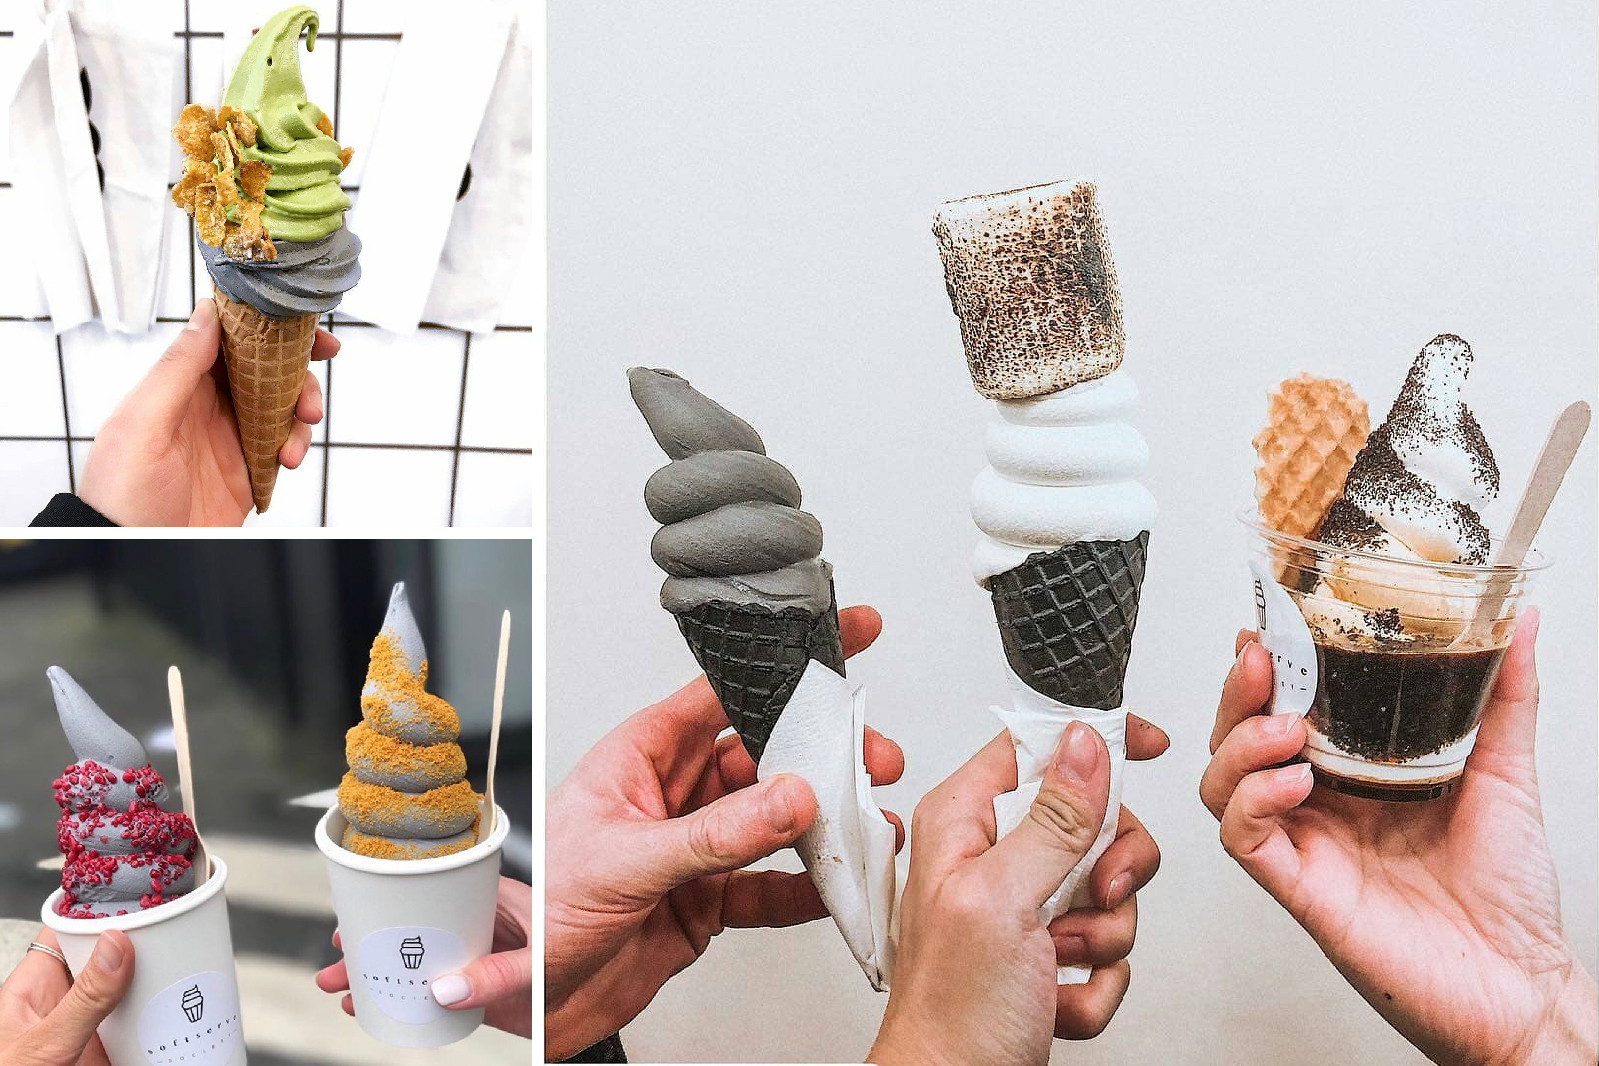 Best Ice Cream Stores on Instagram Sweet Jesus Soft Serve Society Little Damage Eddy's Ice & Vice London New York NY LA Los Angeles Tokyo Toronto Canada